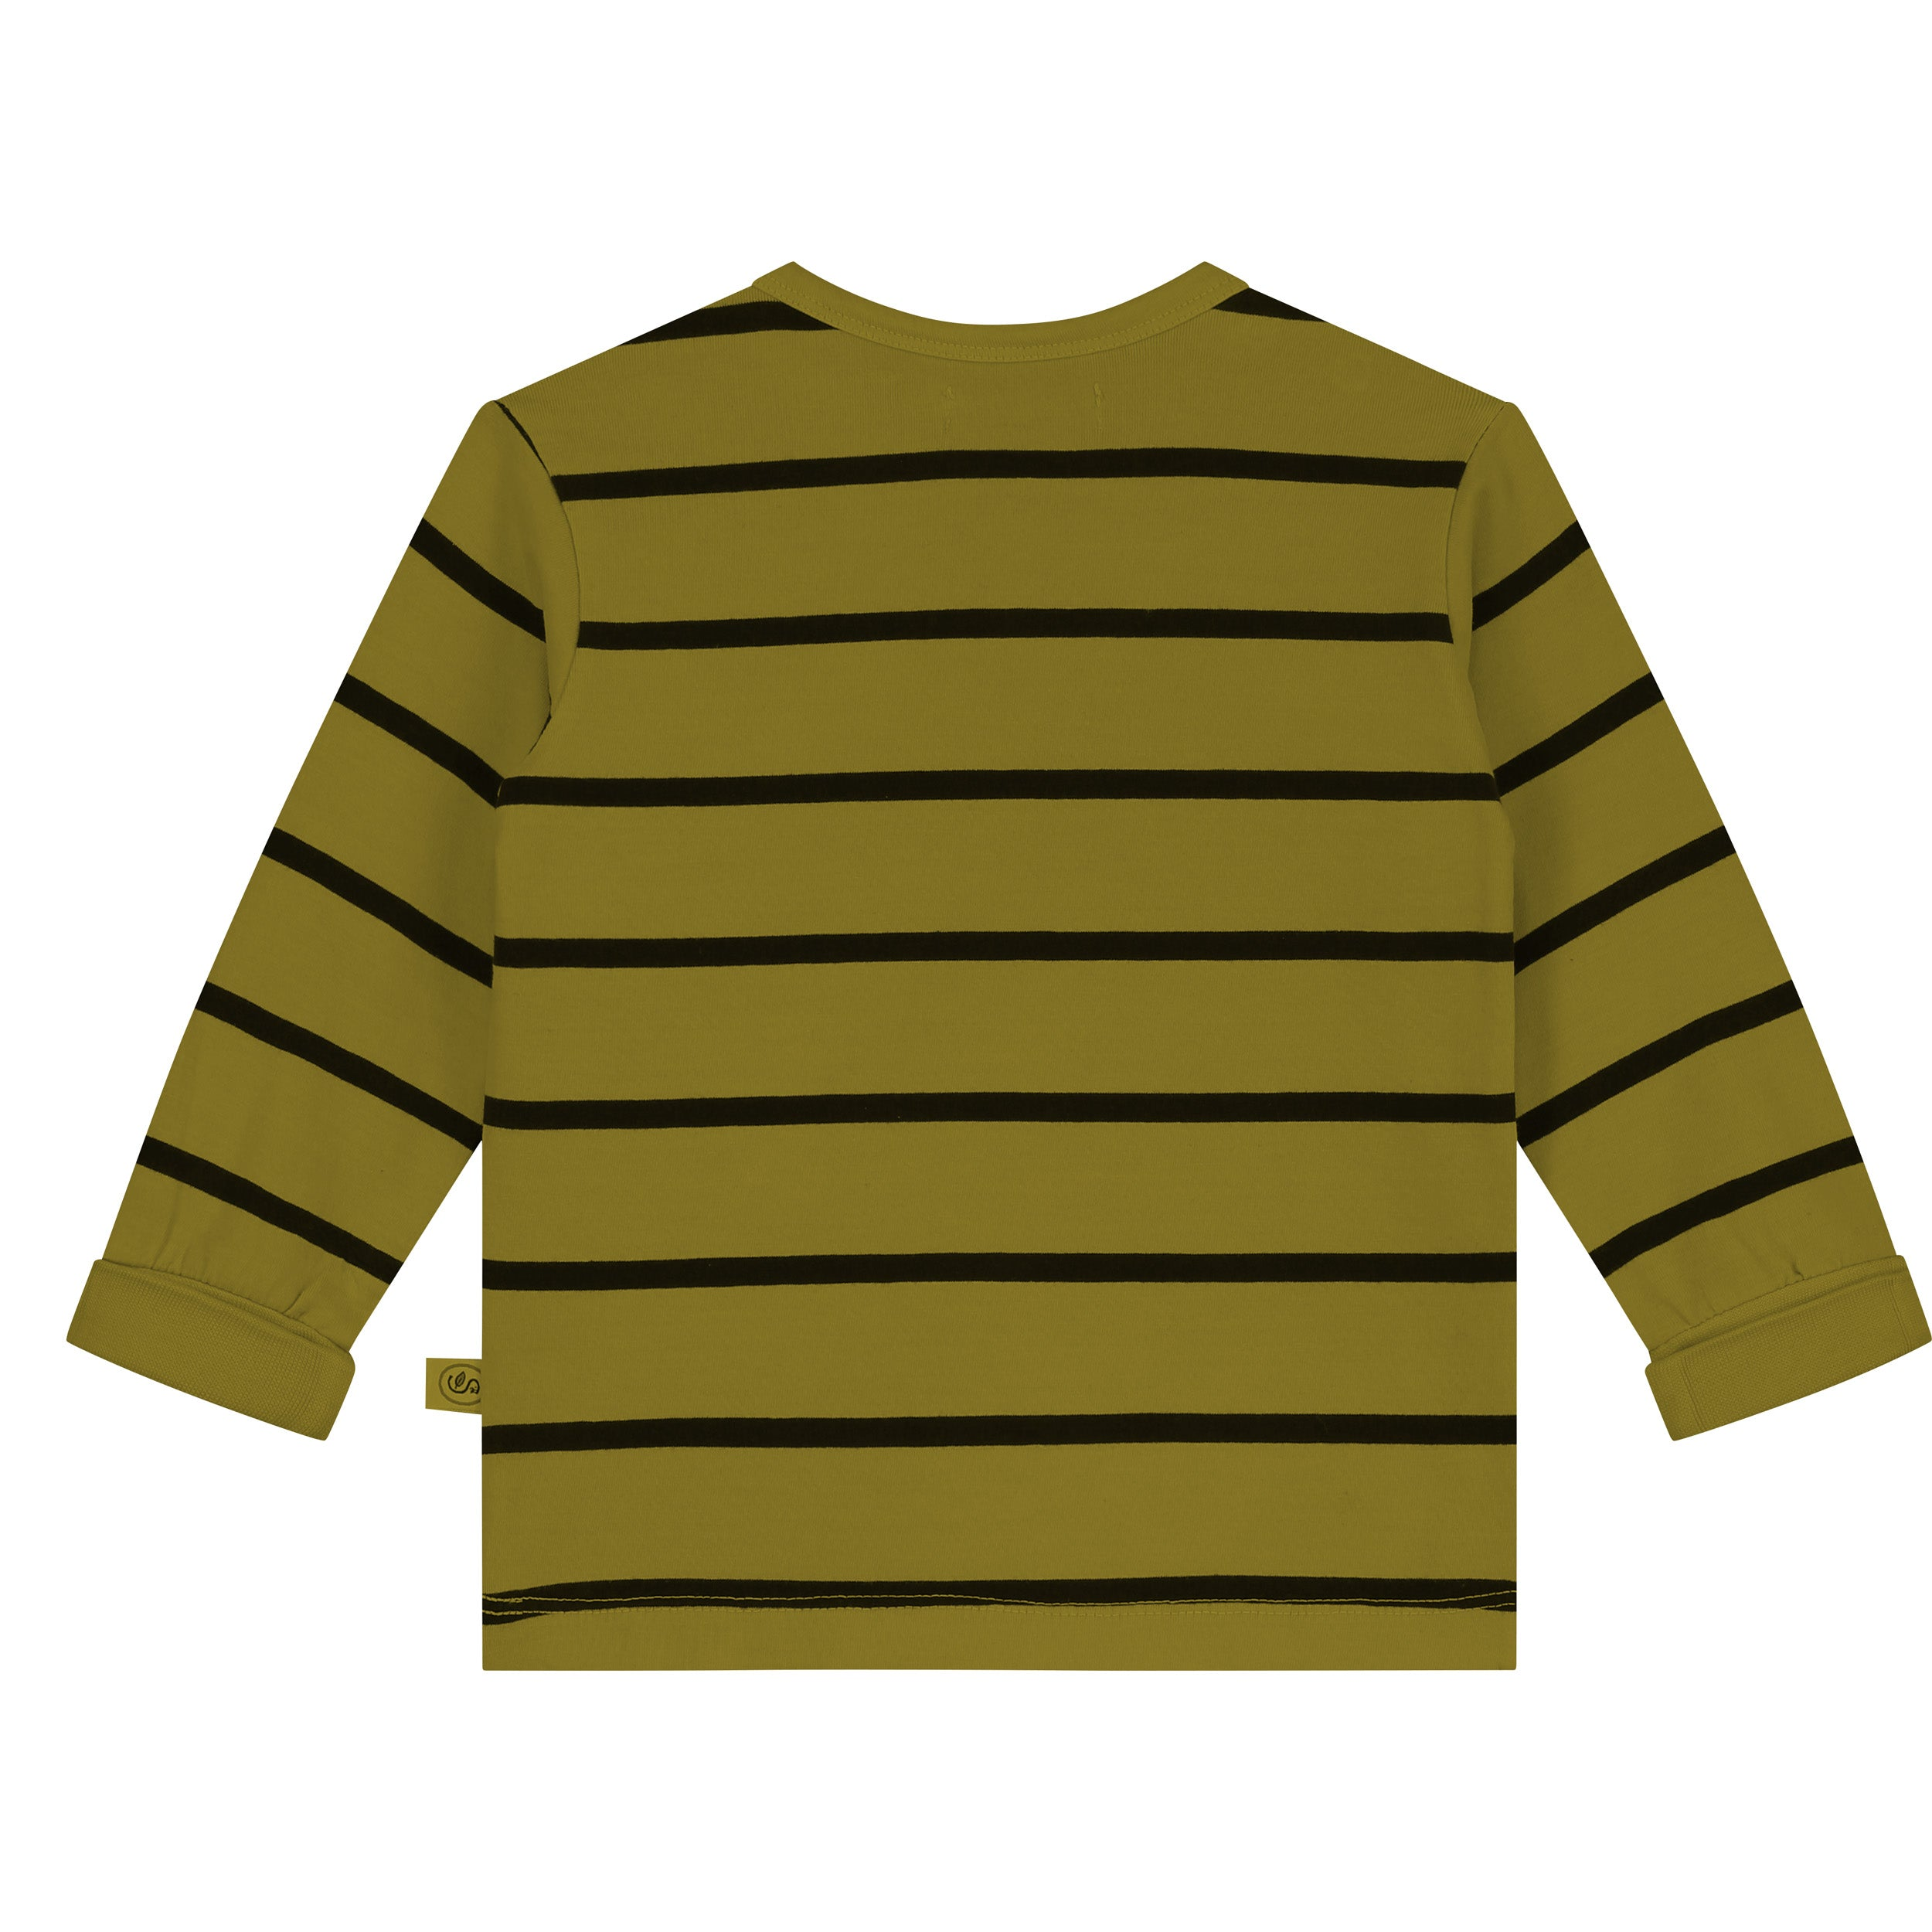 Yarn Dyed Stripes With Groovy Days Print T-Shirt LS